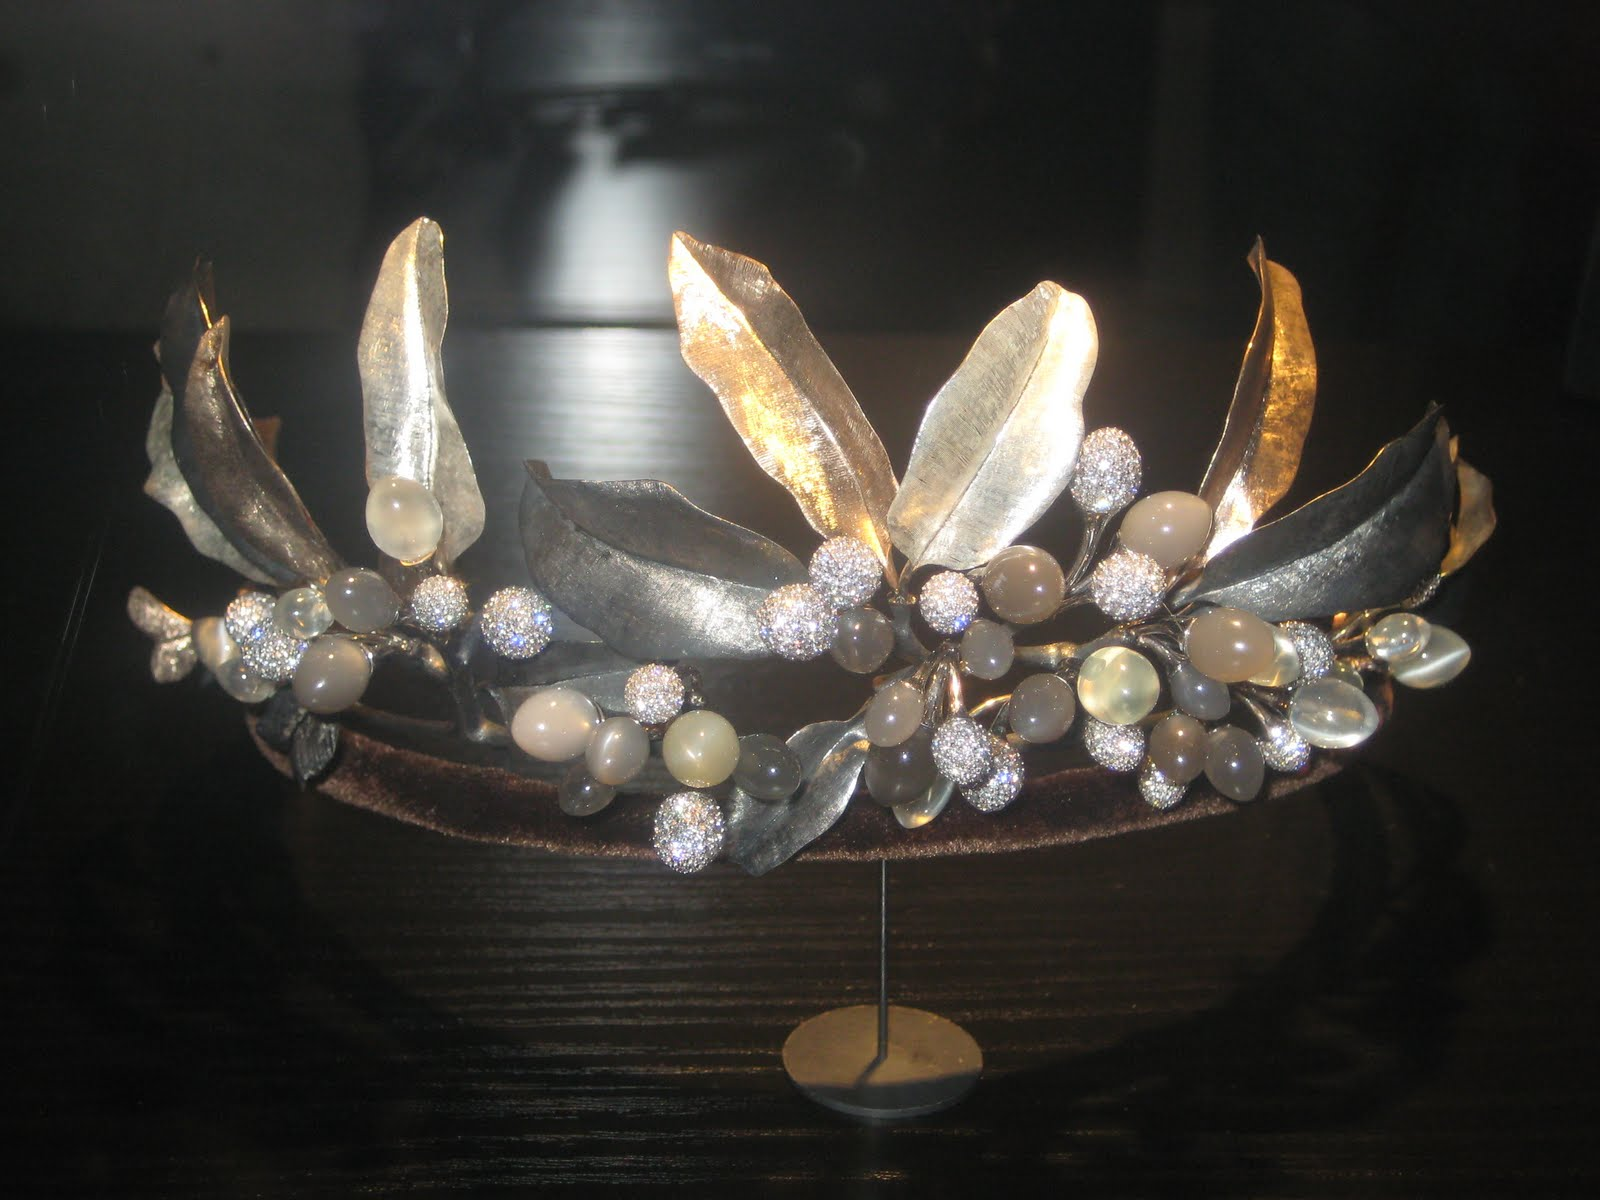 Trond Norén Isaksen: Royal jewels: The Midnight Diadem